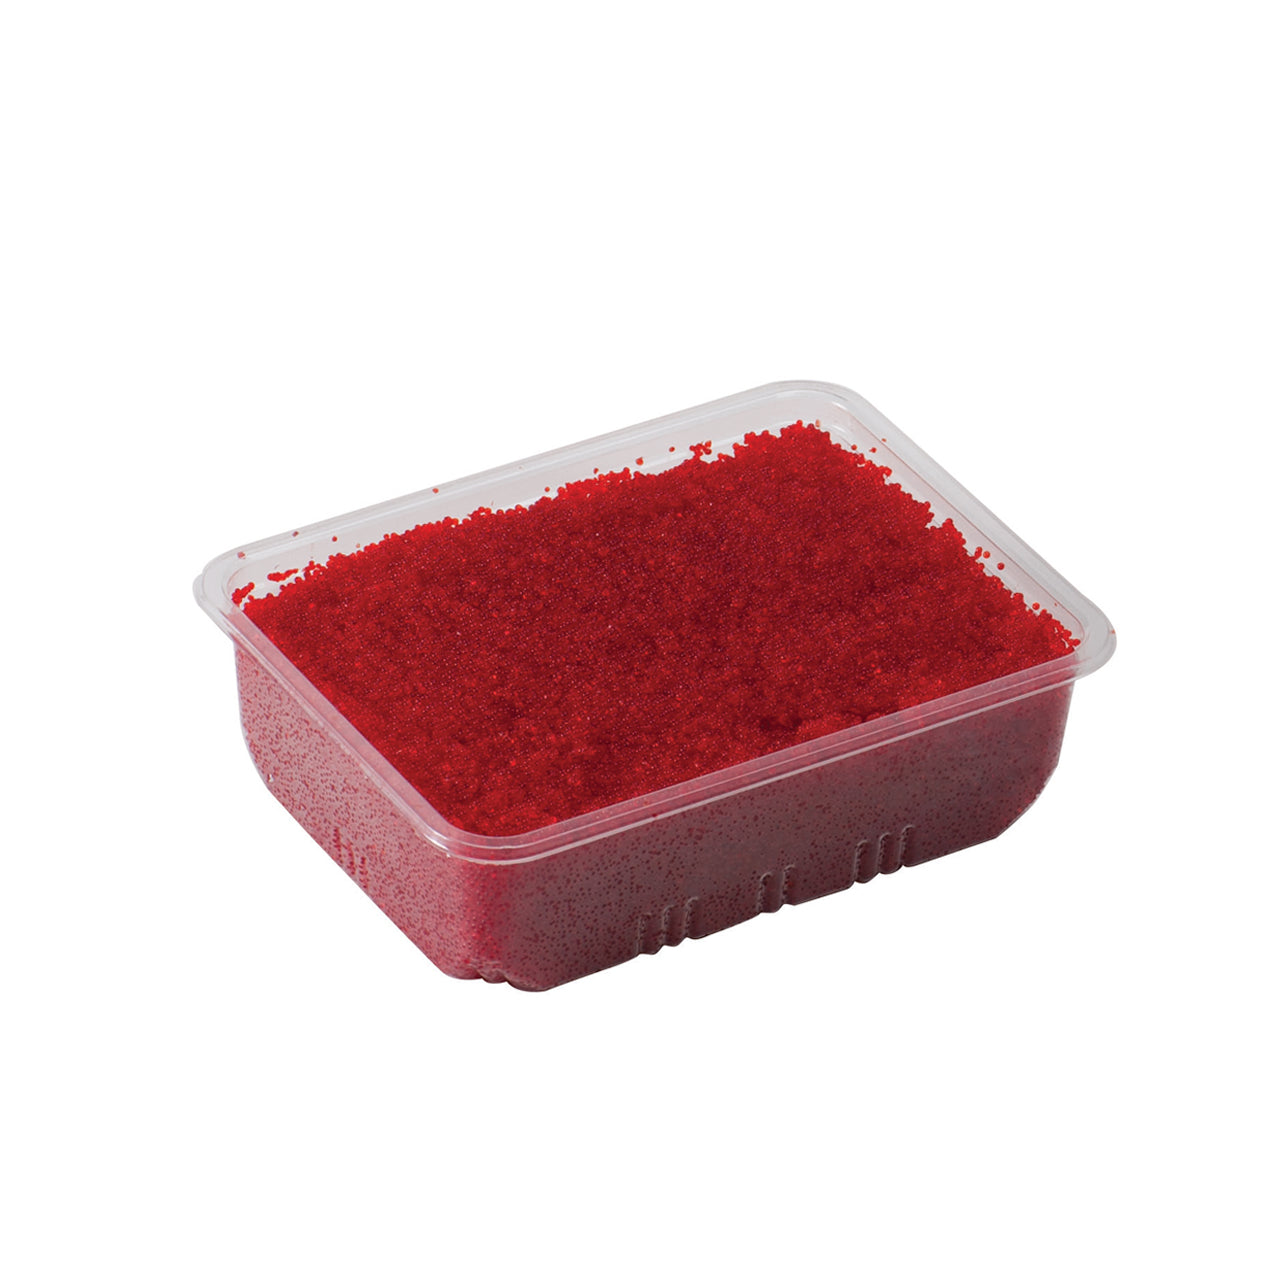 Azuma Foods Tobiko Seasoned Flying Fish Roe 1.1 lbs (500g) - RED (SKU: 74127)